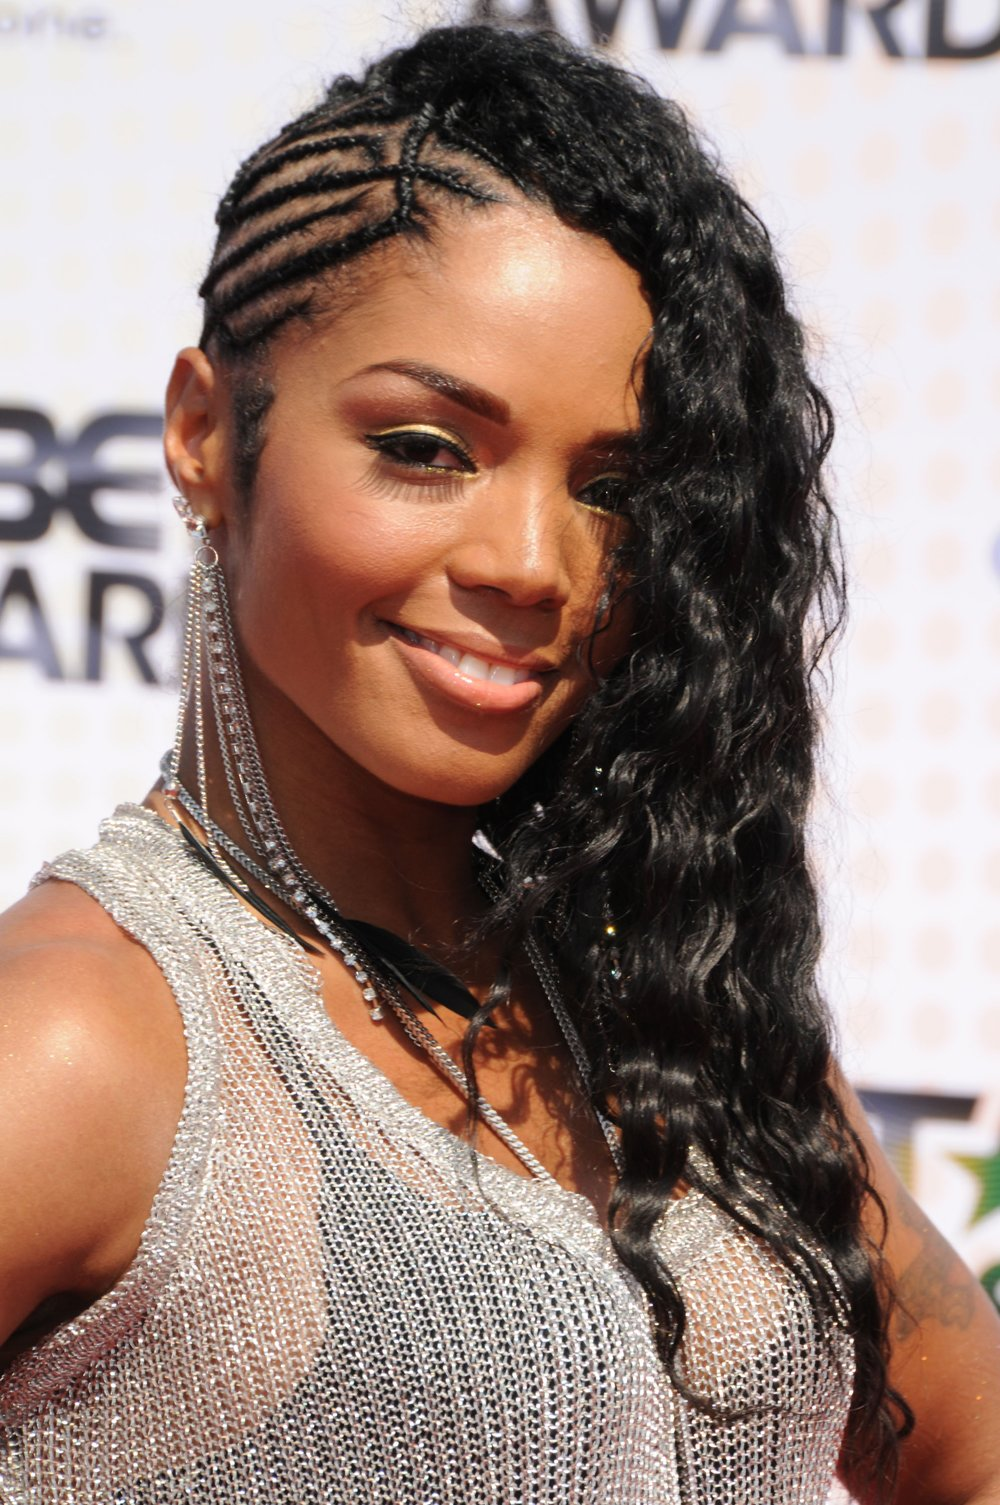 The Best Rasheeda Hair Talk With Ebony C Princess Longing 4 Length Pictures